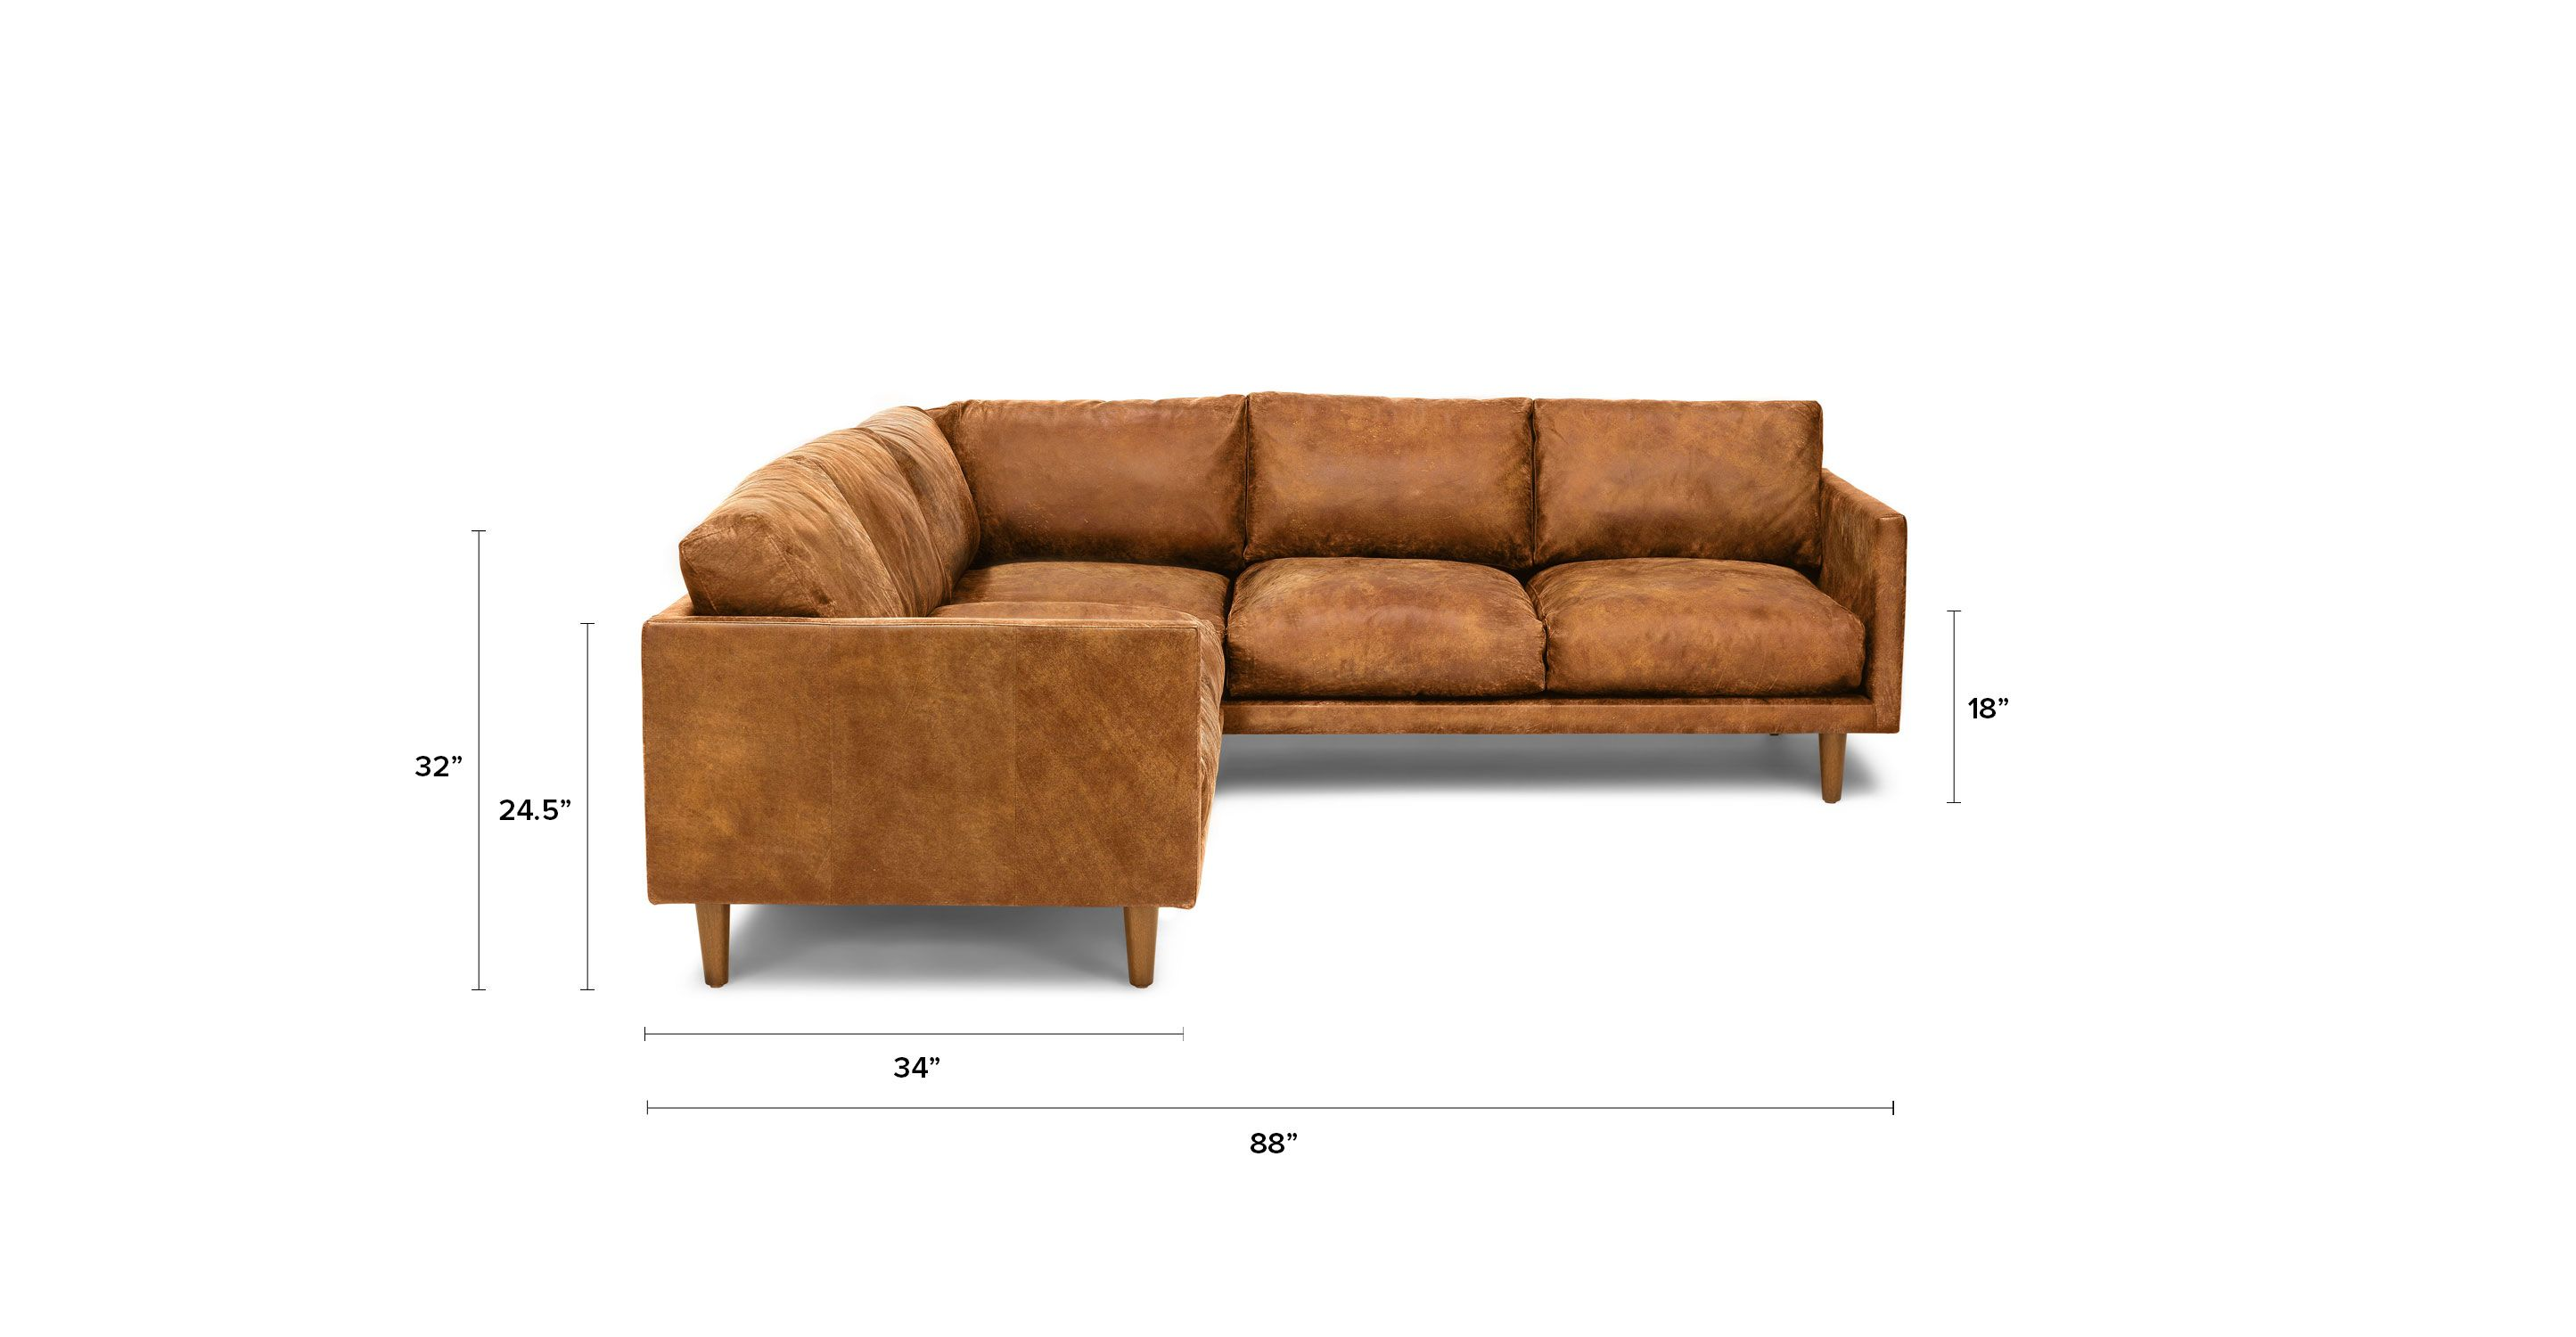 Tan Brown Leather Mid Century Modern Sectional Upholstered